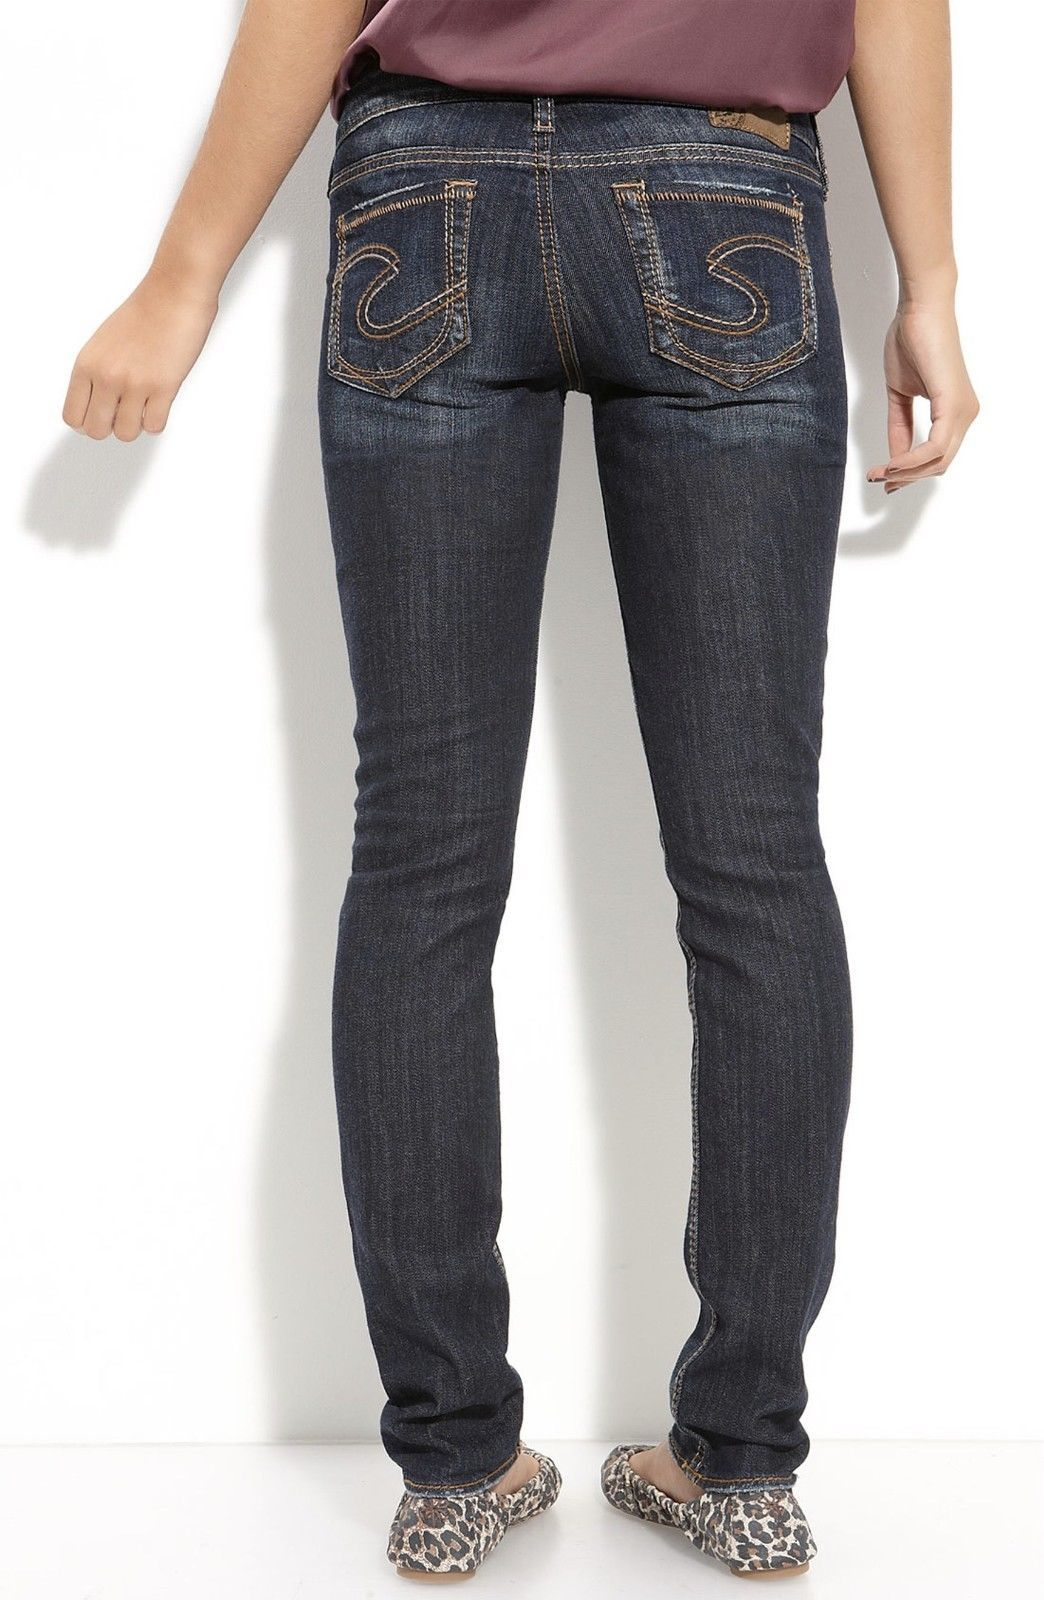 eafc8cde S l1600. S l1600. Previous. New SILVER Jeans Sale Buckle Mid Rise Aiko Dark  Skinny Stretch Jean 24 X 31